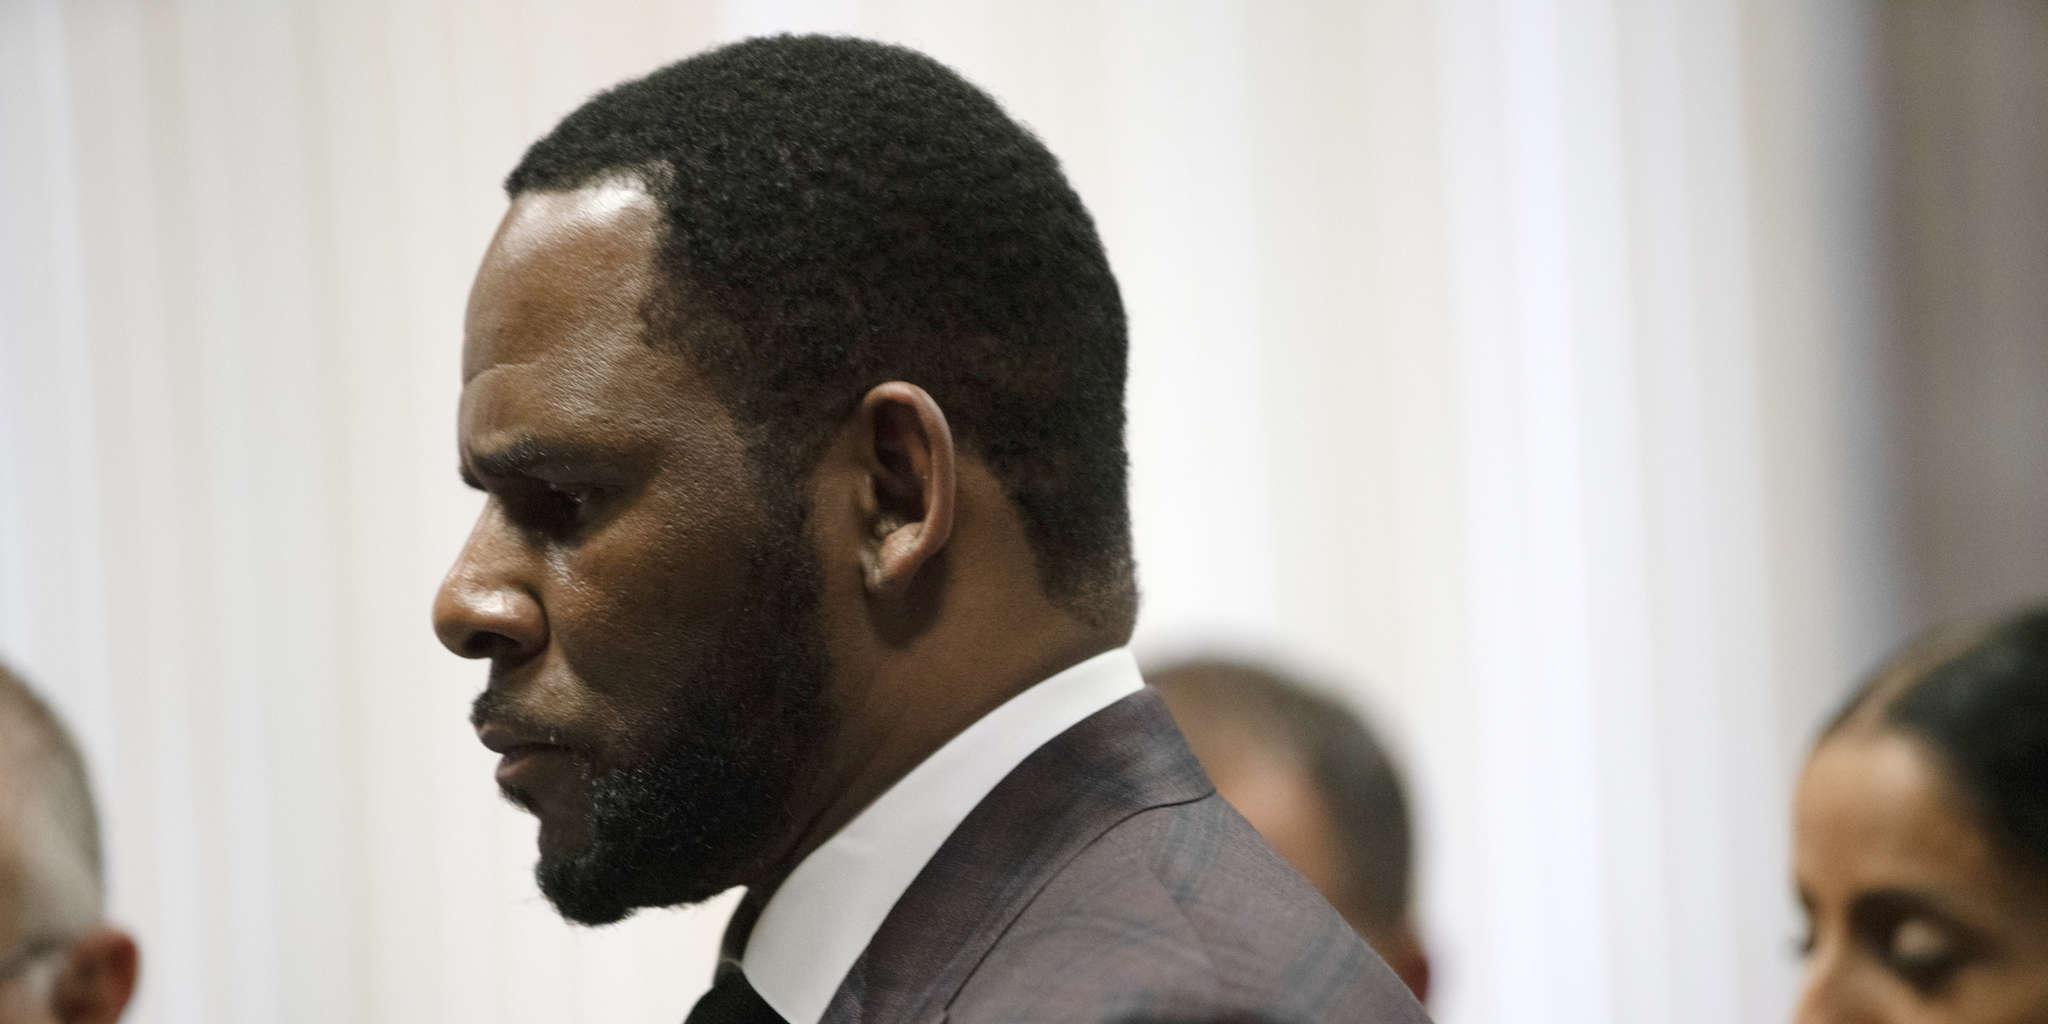 R. Kelly's Ex-Employees Turn In Over 20 Sex Tapes With Underage Girls